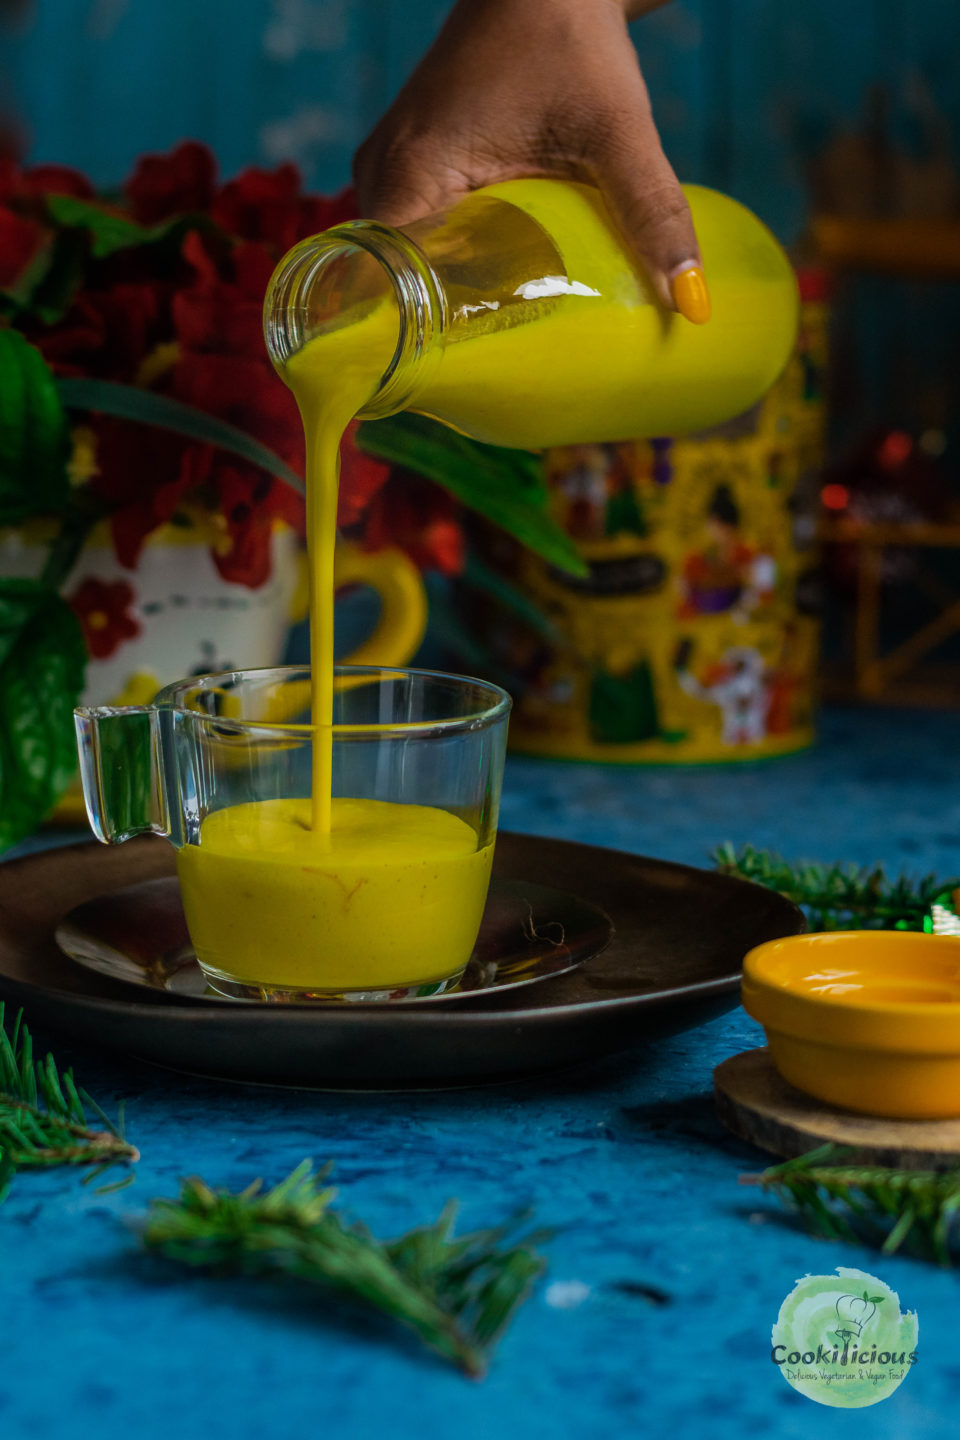 a hand pouring Iced Golden Milk from a bottle into a glass